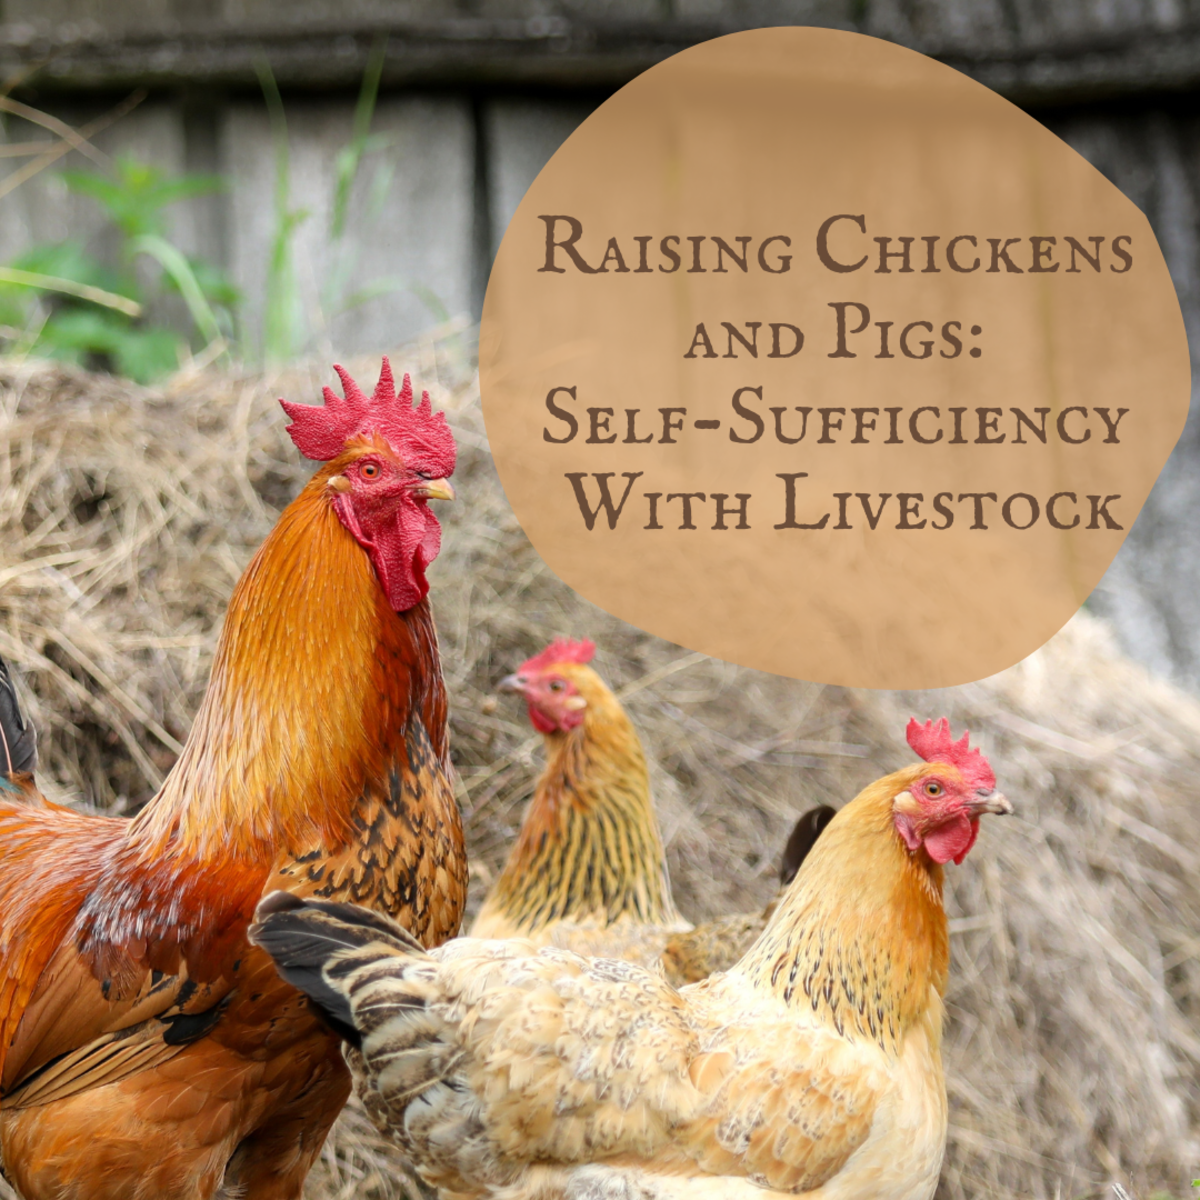 Learn how to be self-sufficient with your own chickens and pigs.